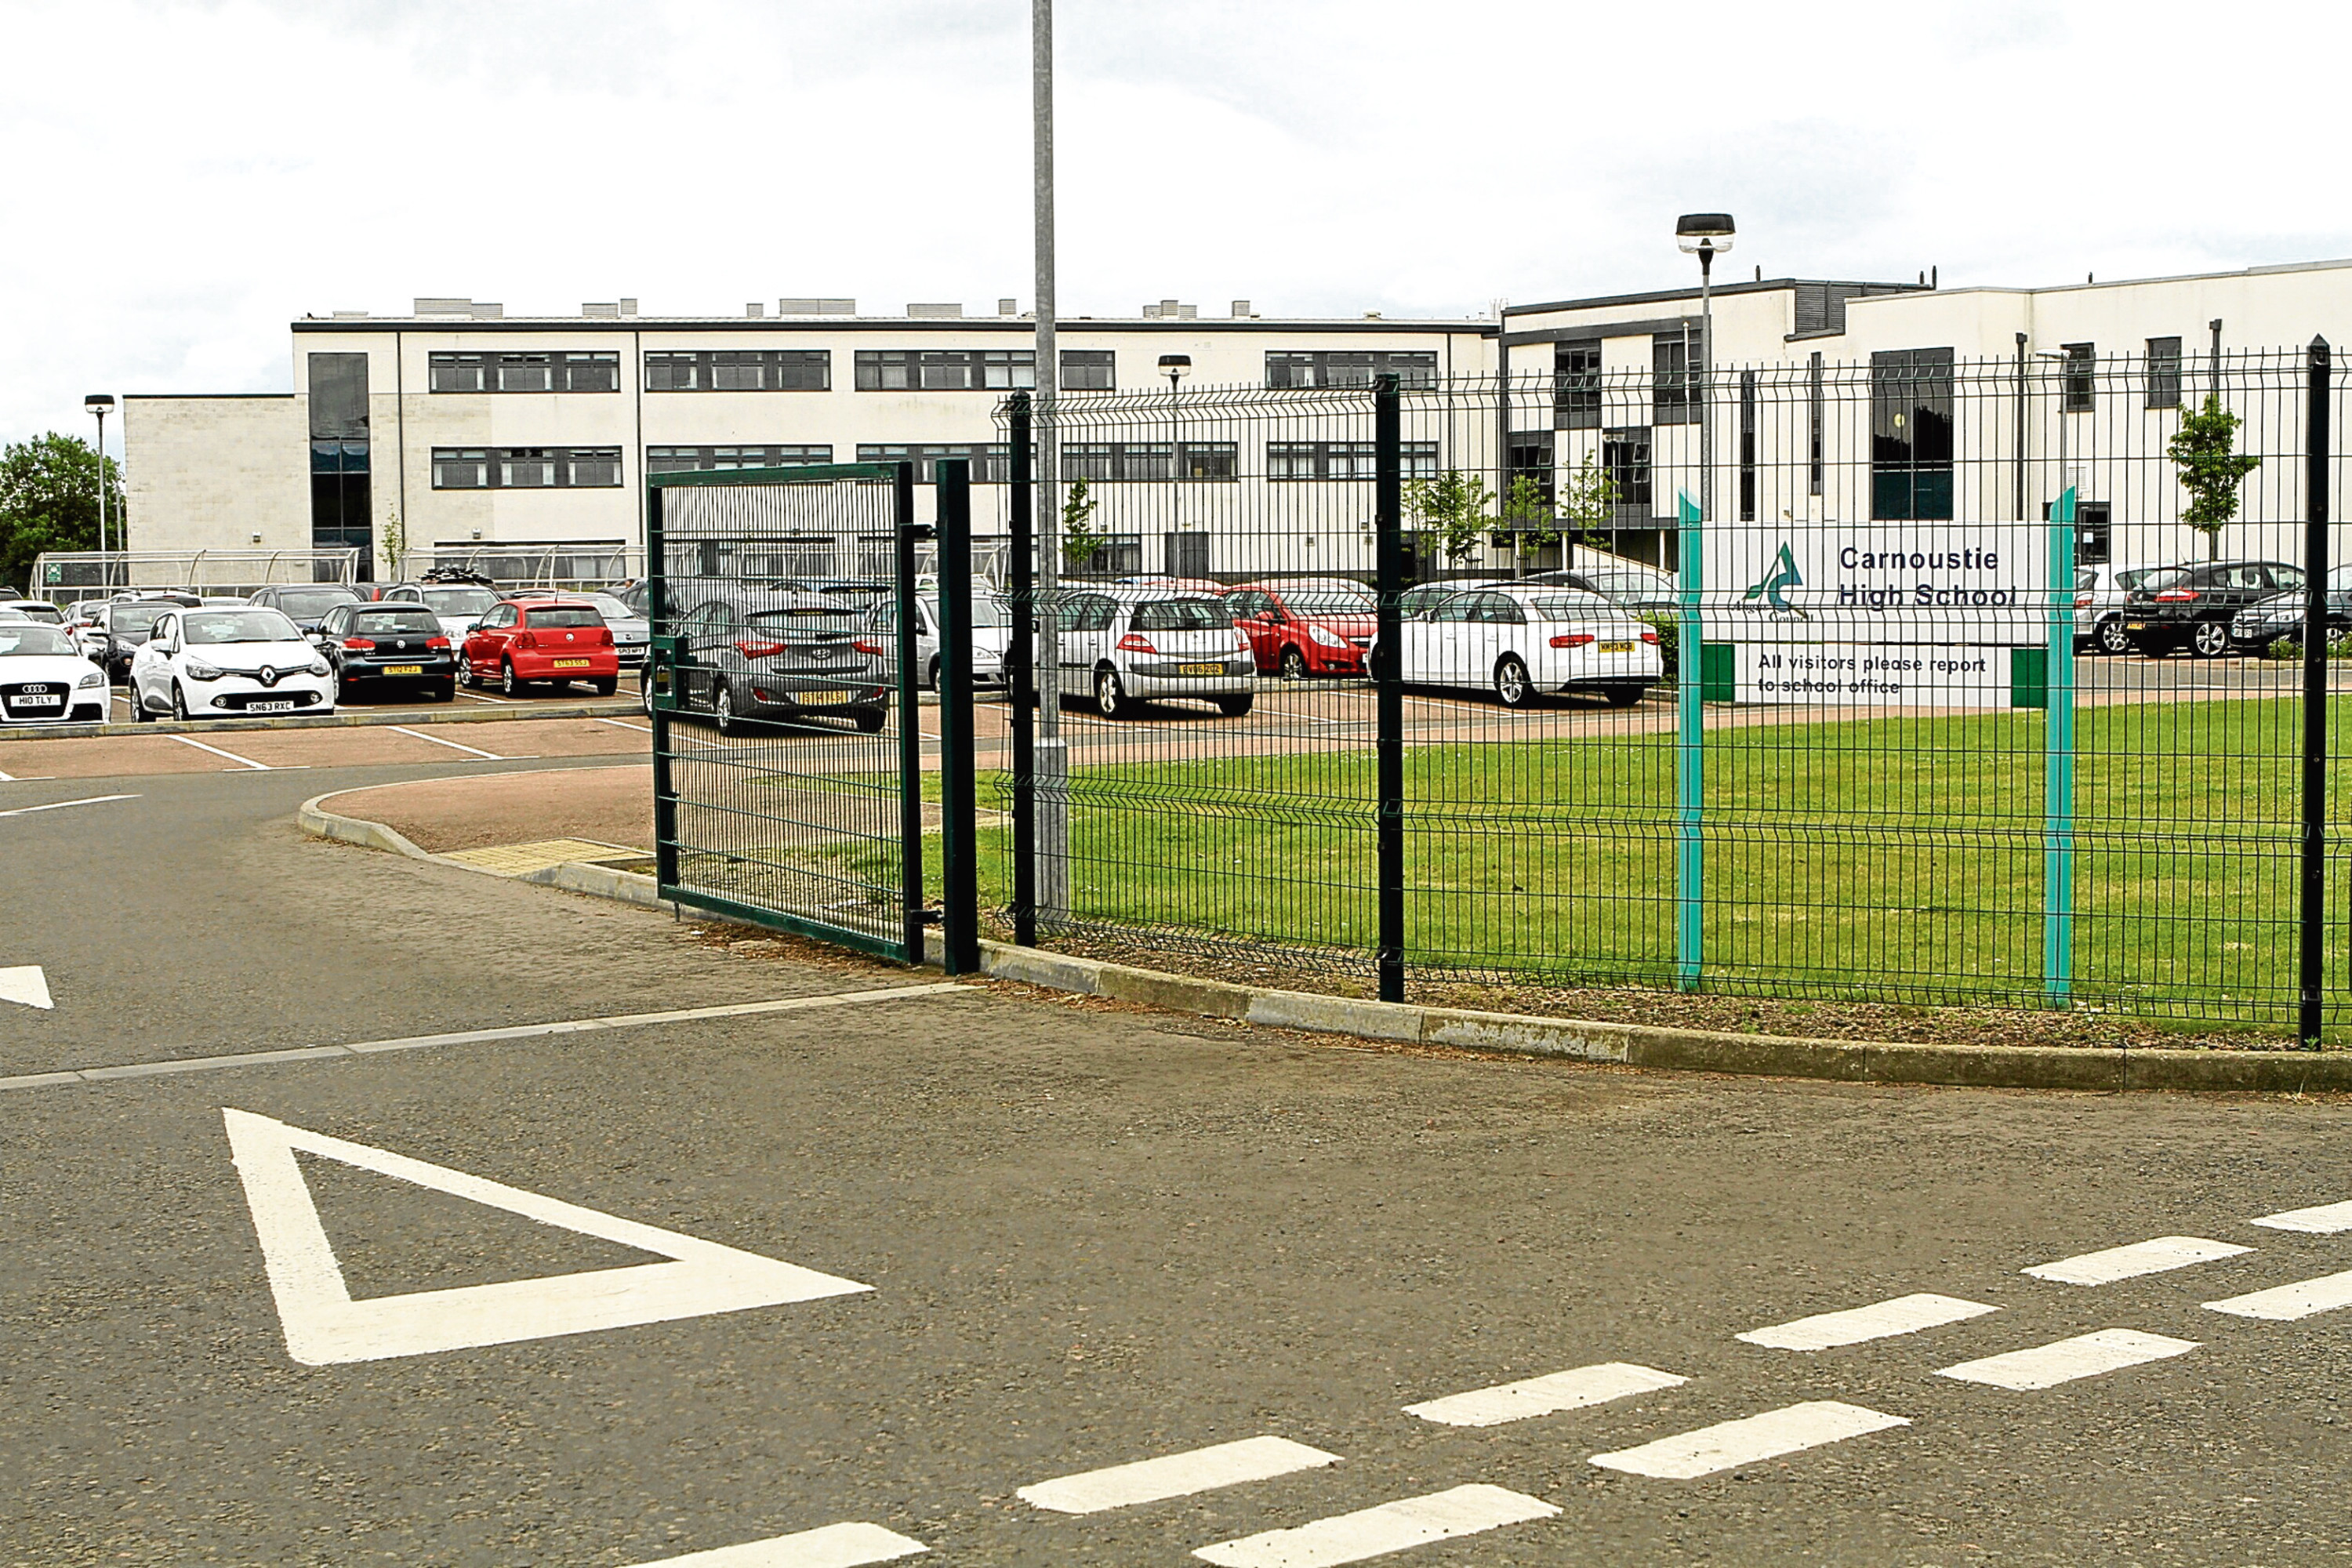 Carnoustie High School.